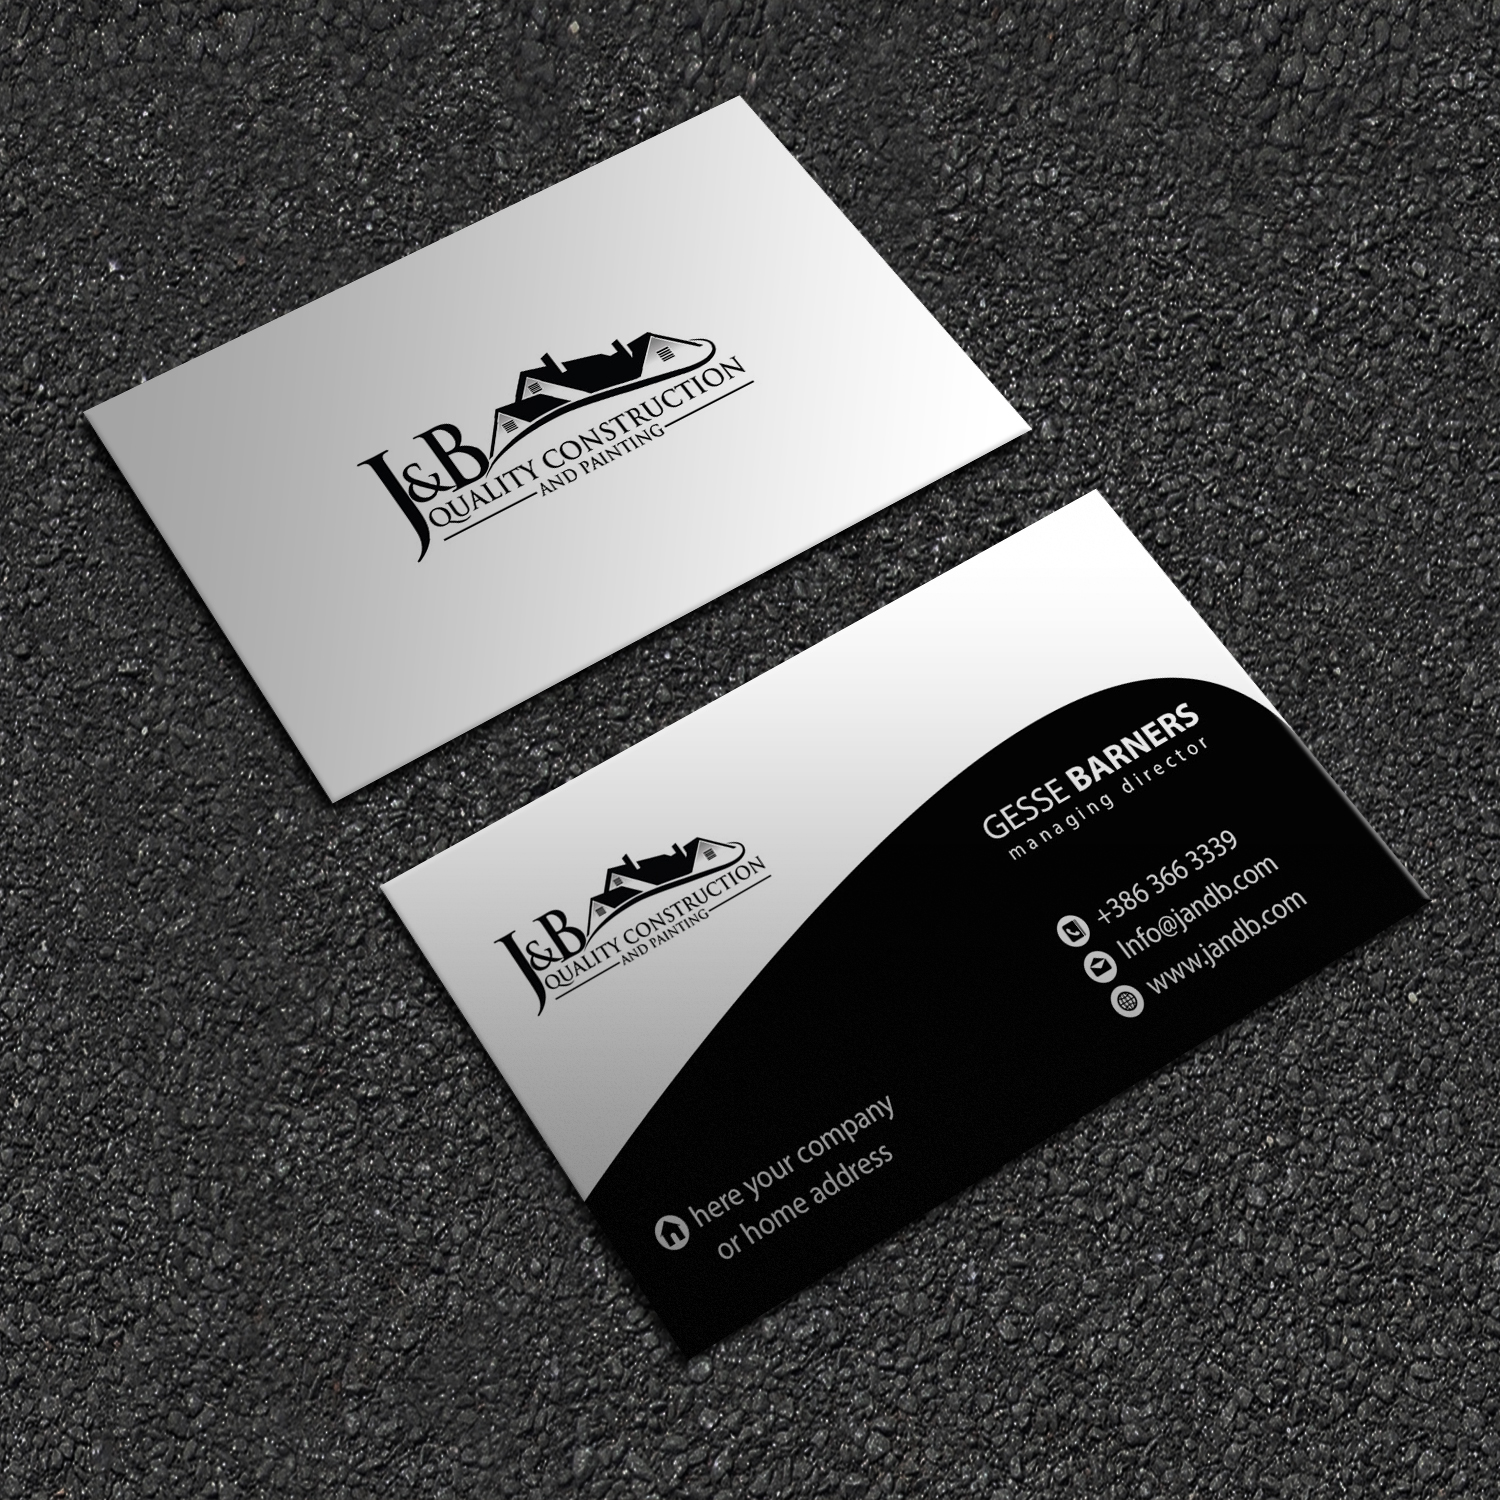 Professional masculine construction company business card design business card design by ibrahimhossainkhan24 for j b quality construction llc design 13332507 reheart Gallery